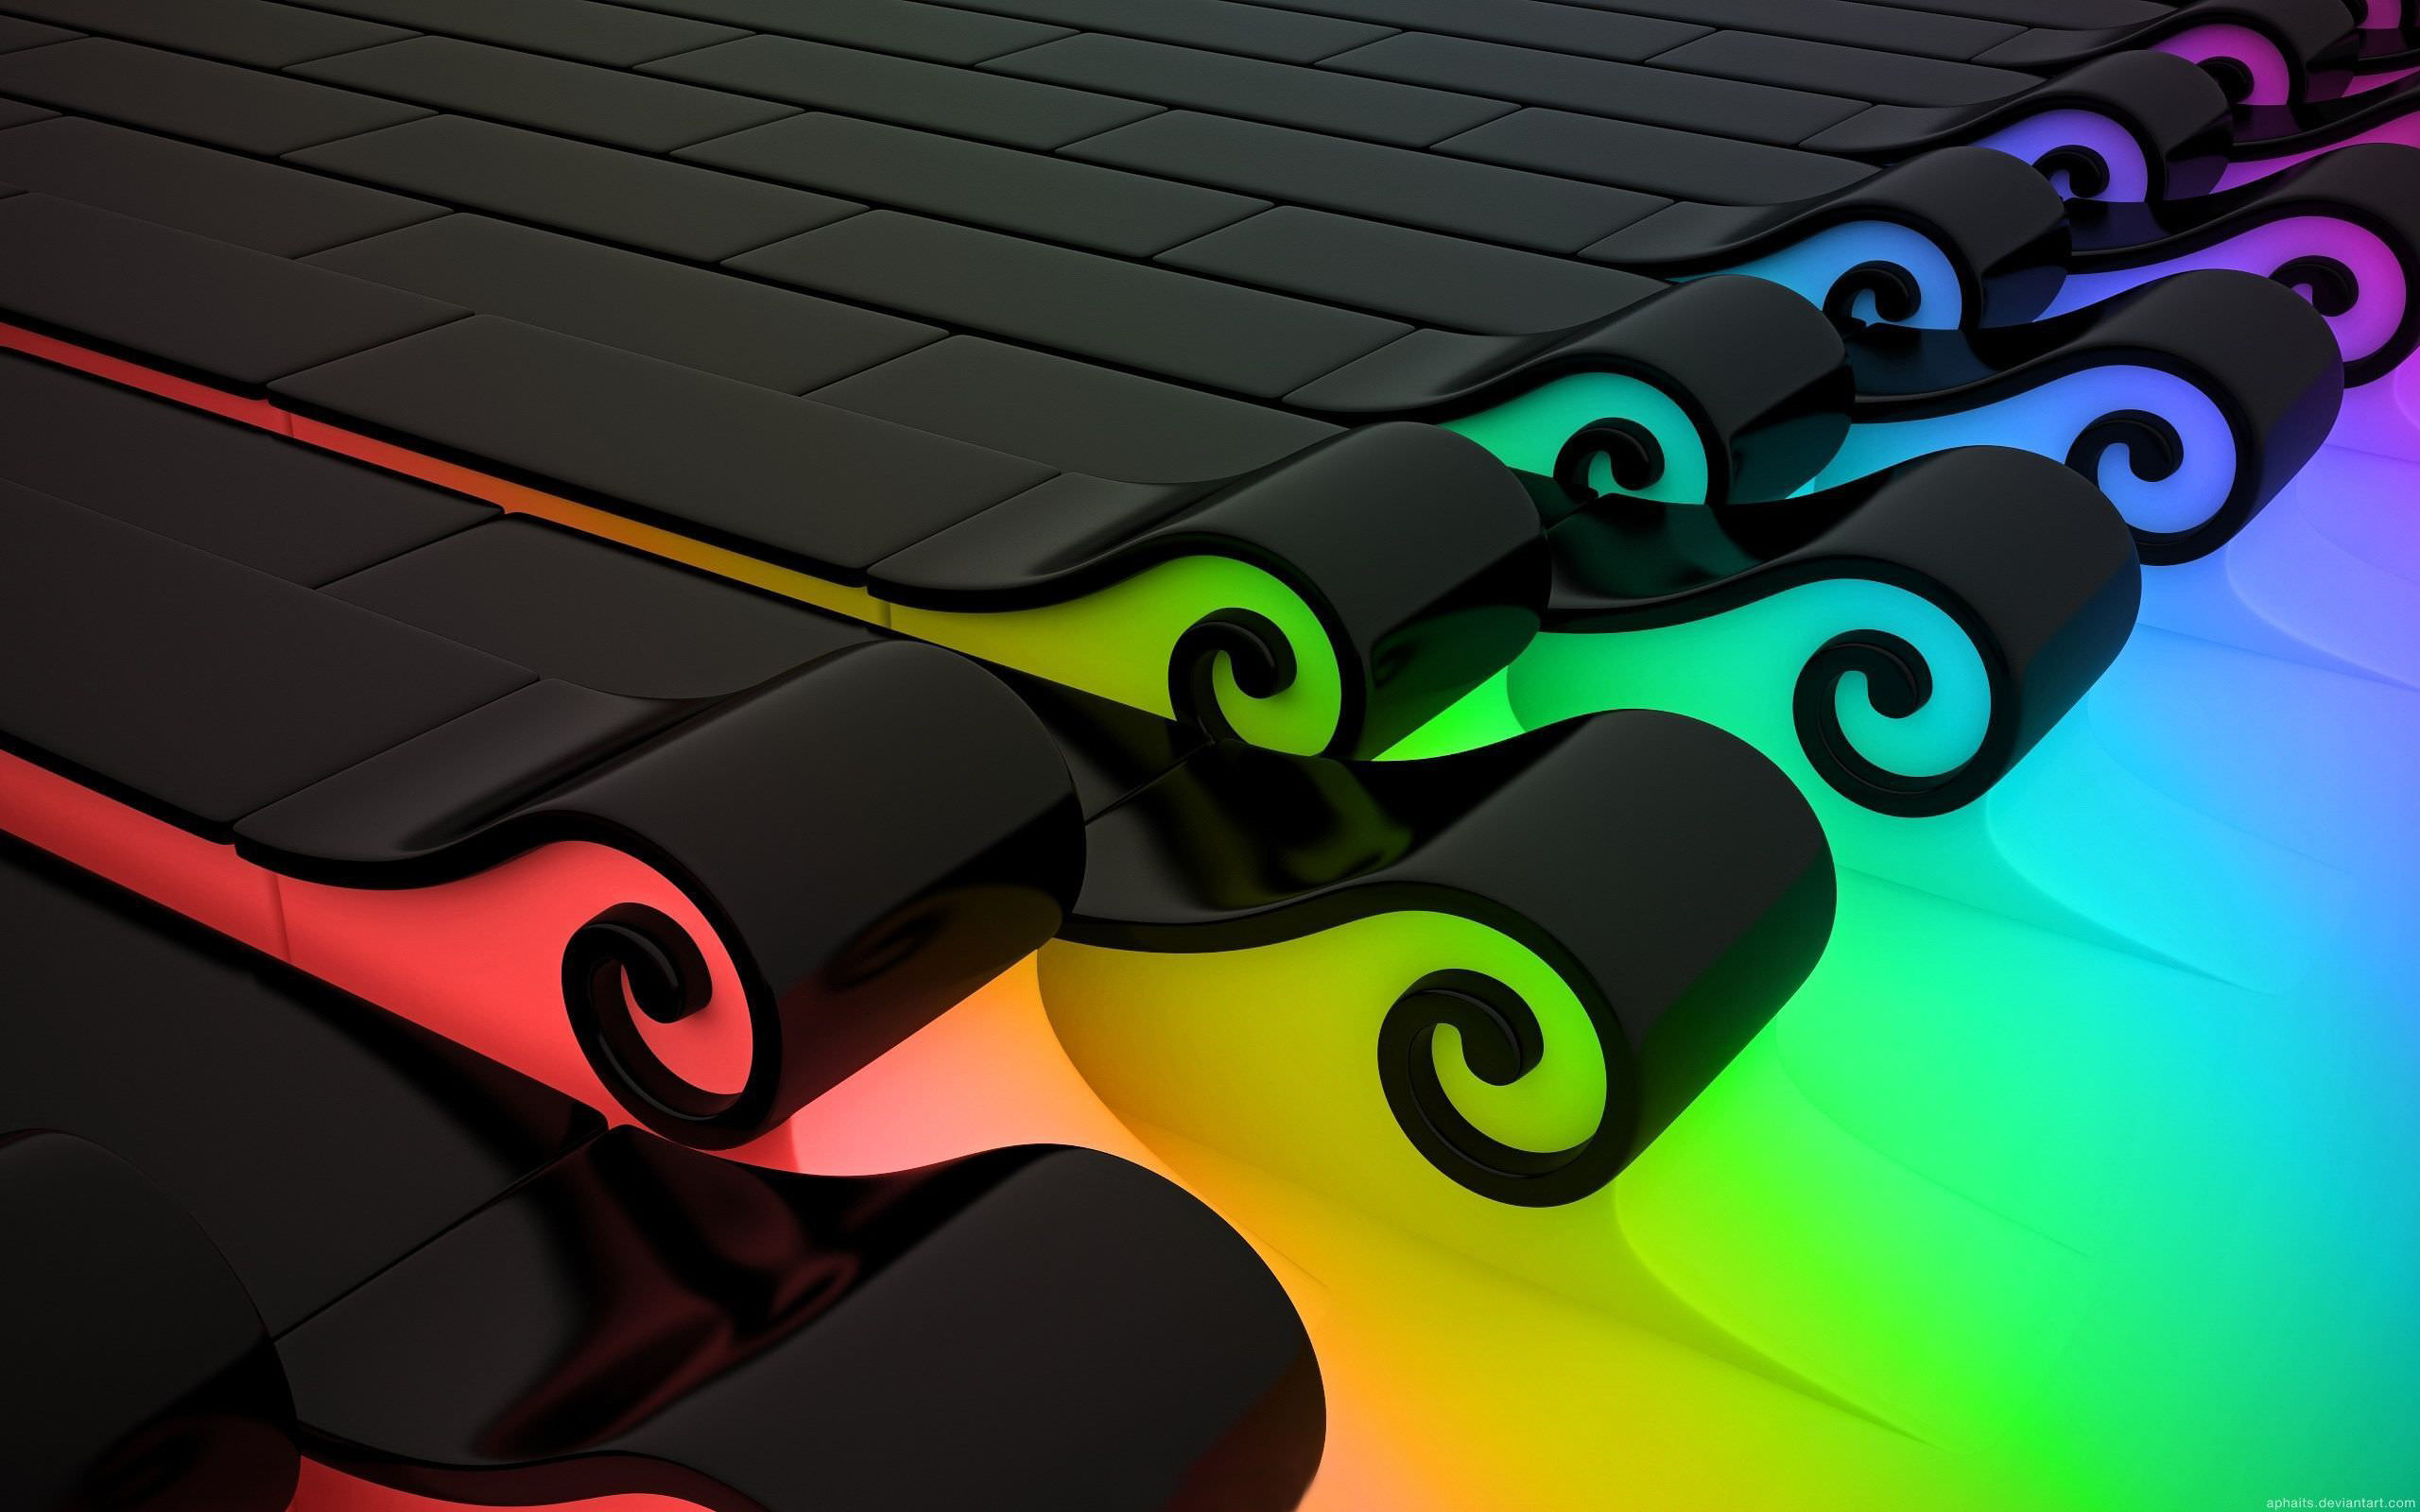 Abstract 3D Colorful Waves Wallpaper